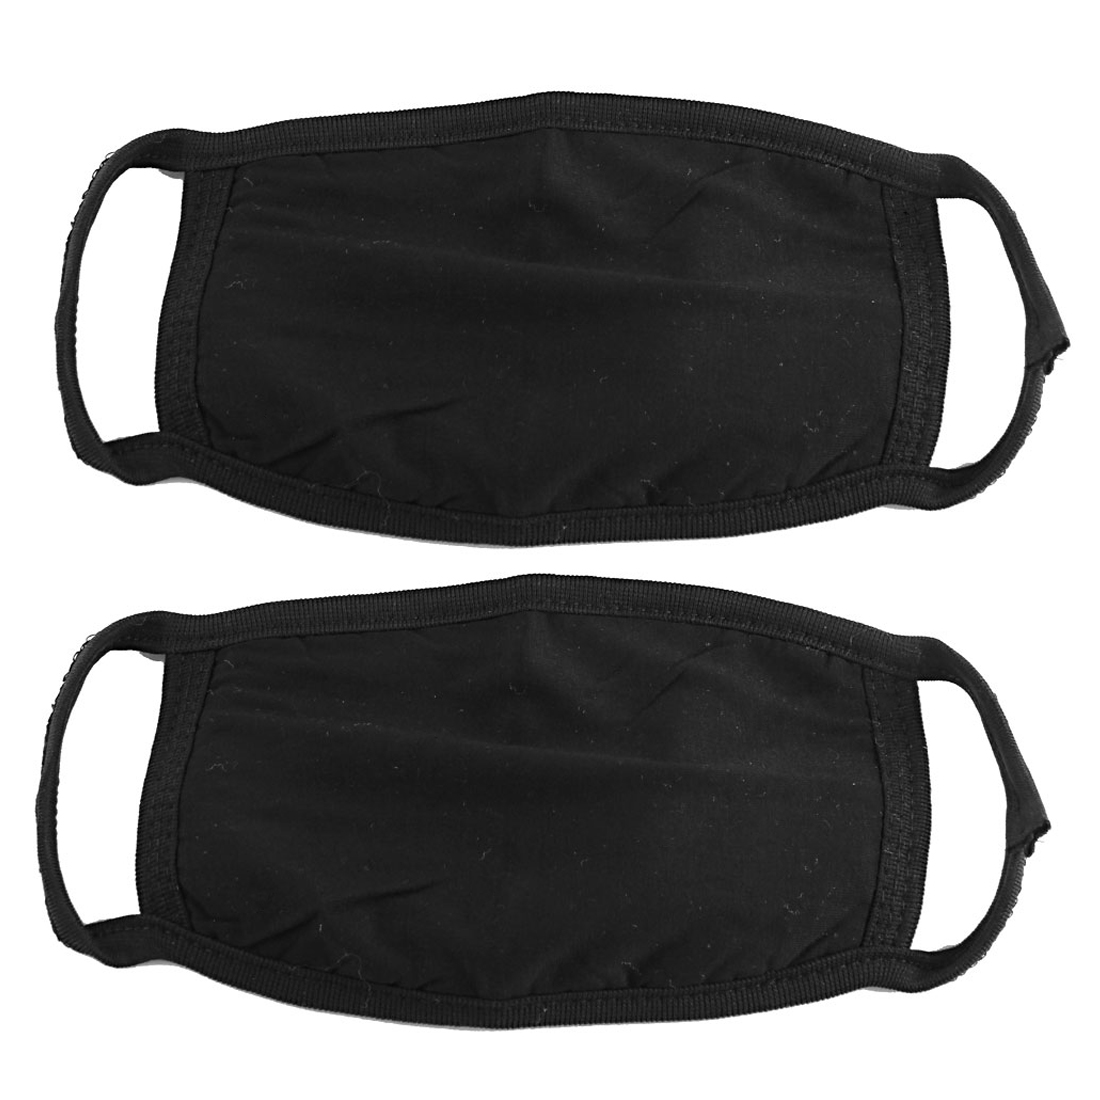 2 Pcs Cotton Blend Anti Dust Face Mouth Mask Black for Man Woman